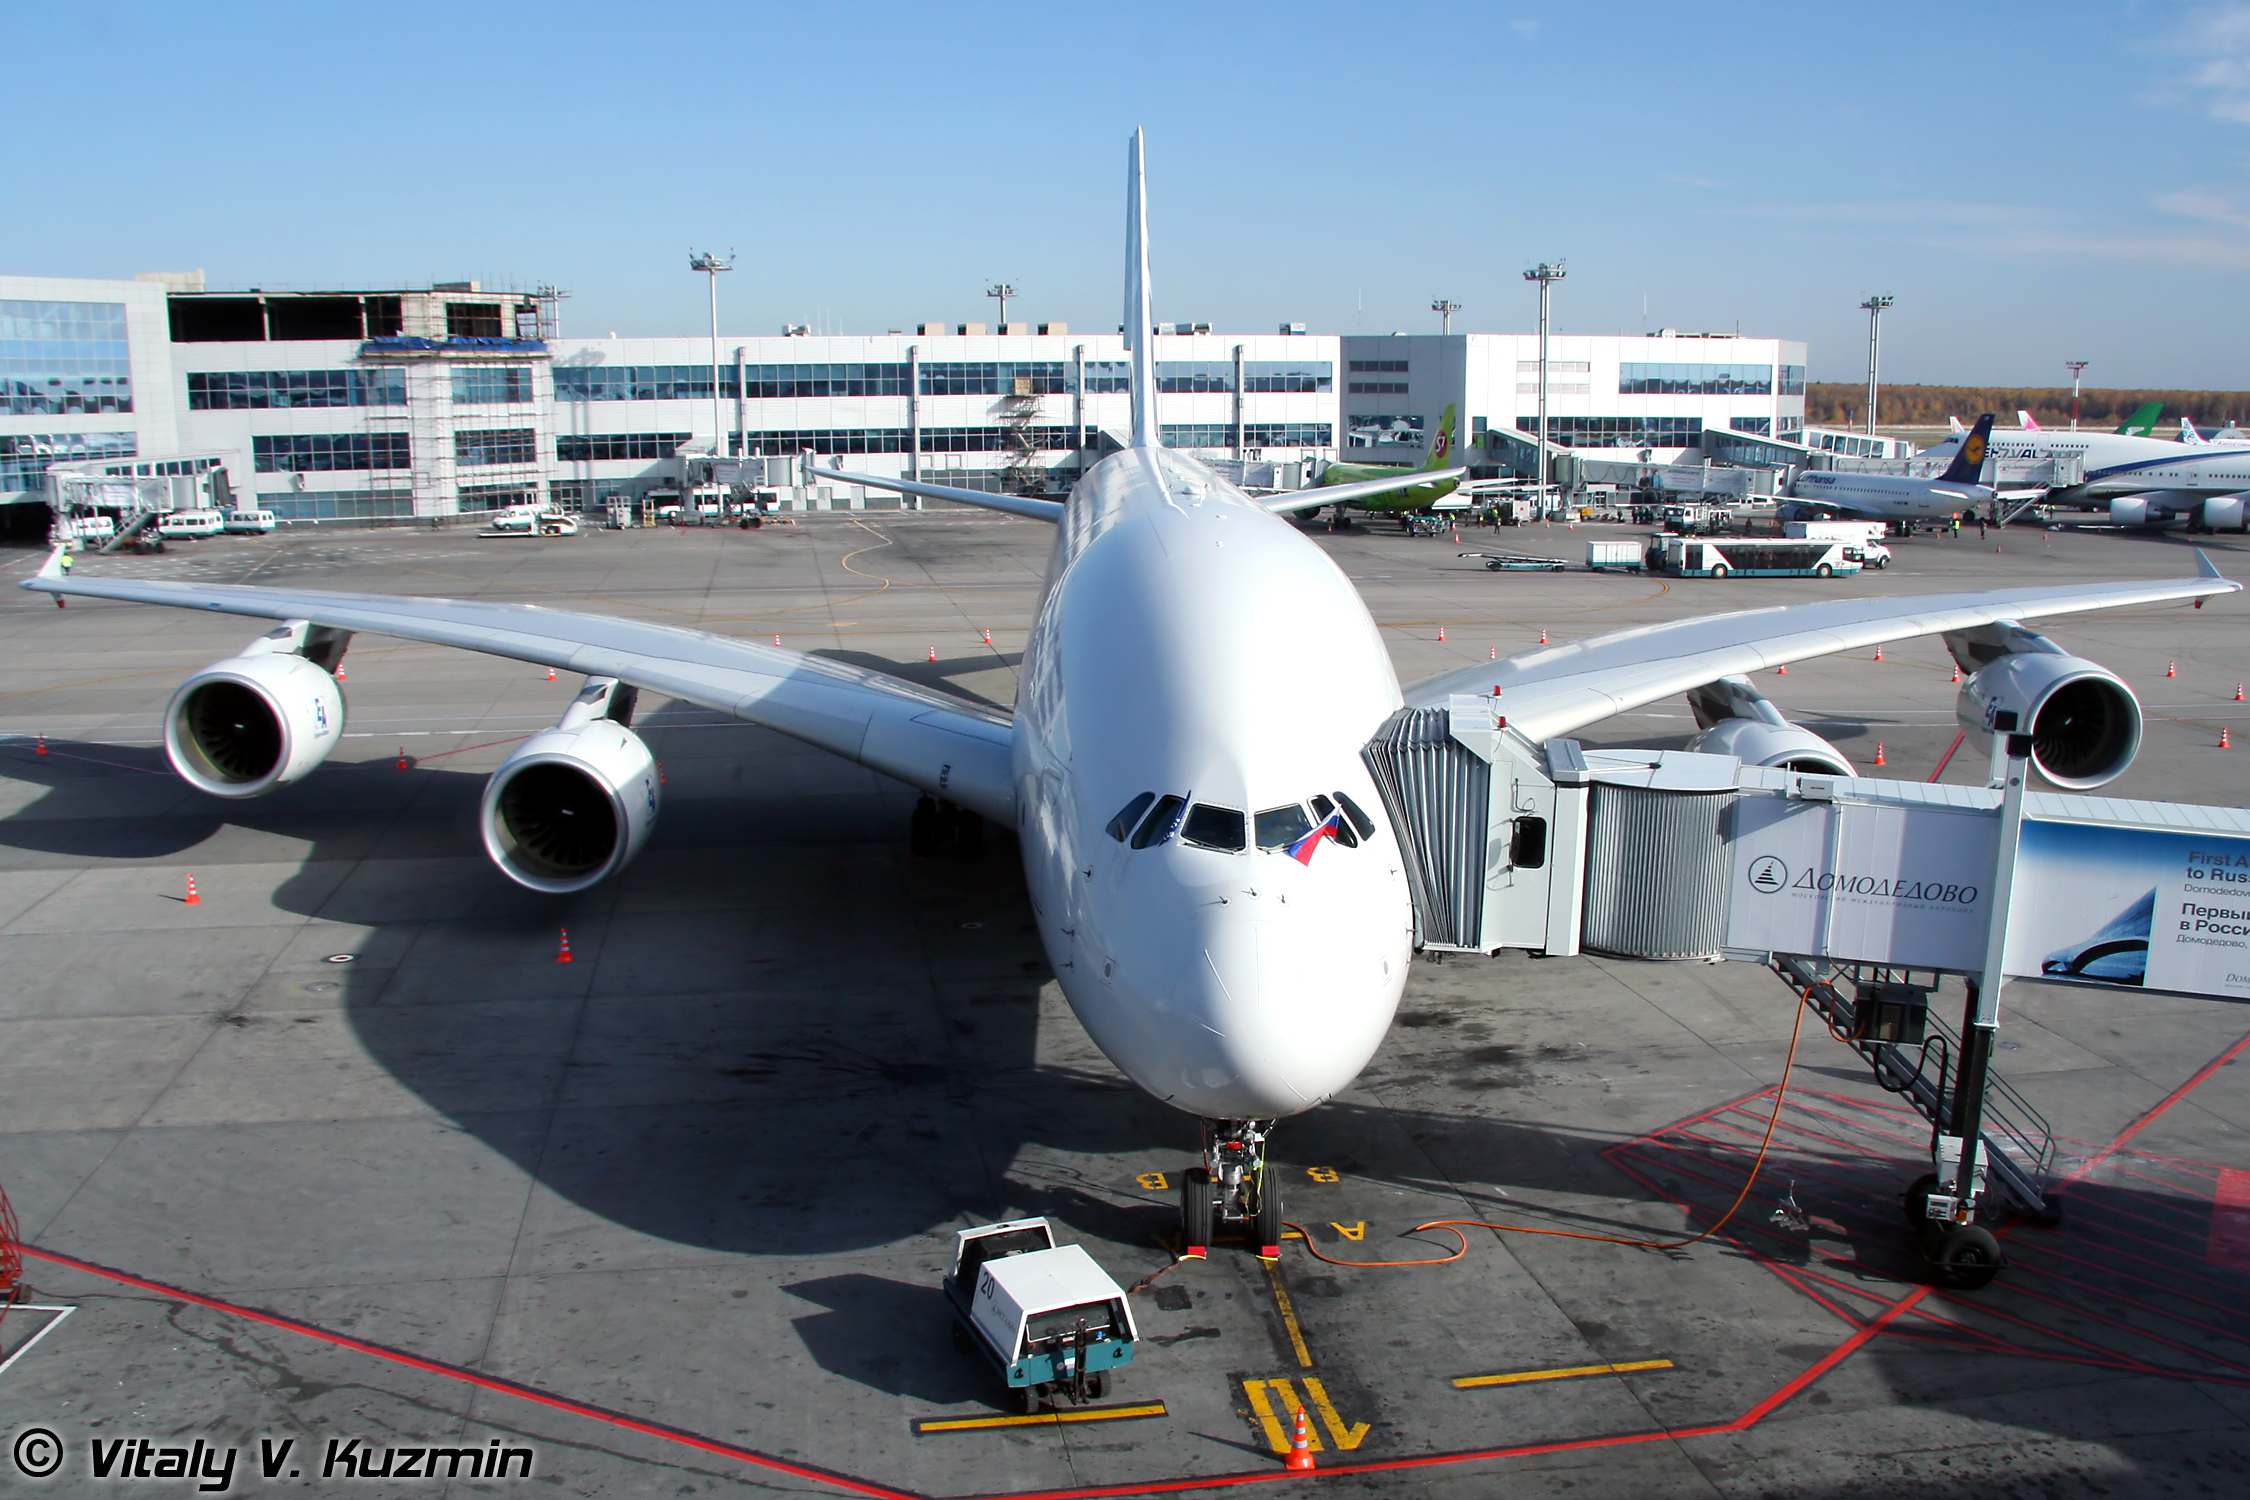 File:Airbus A380 (F-WWDD) at Domodedovo International Airport (248 ...